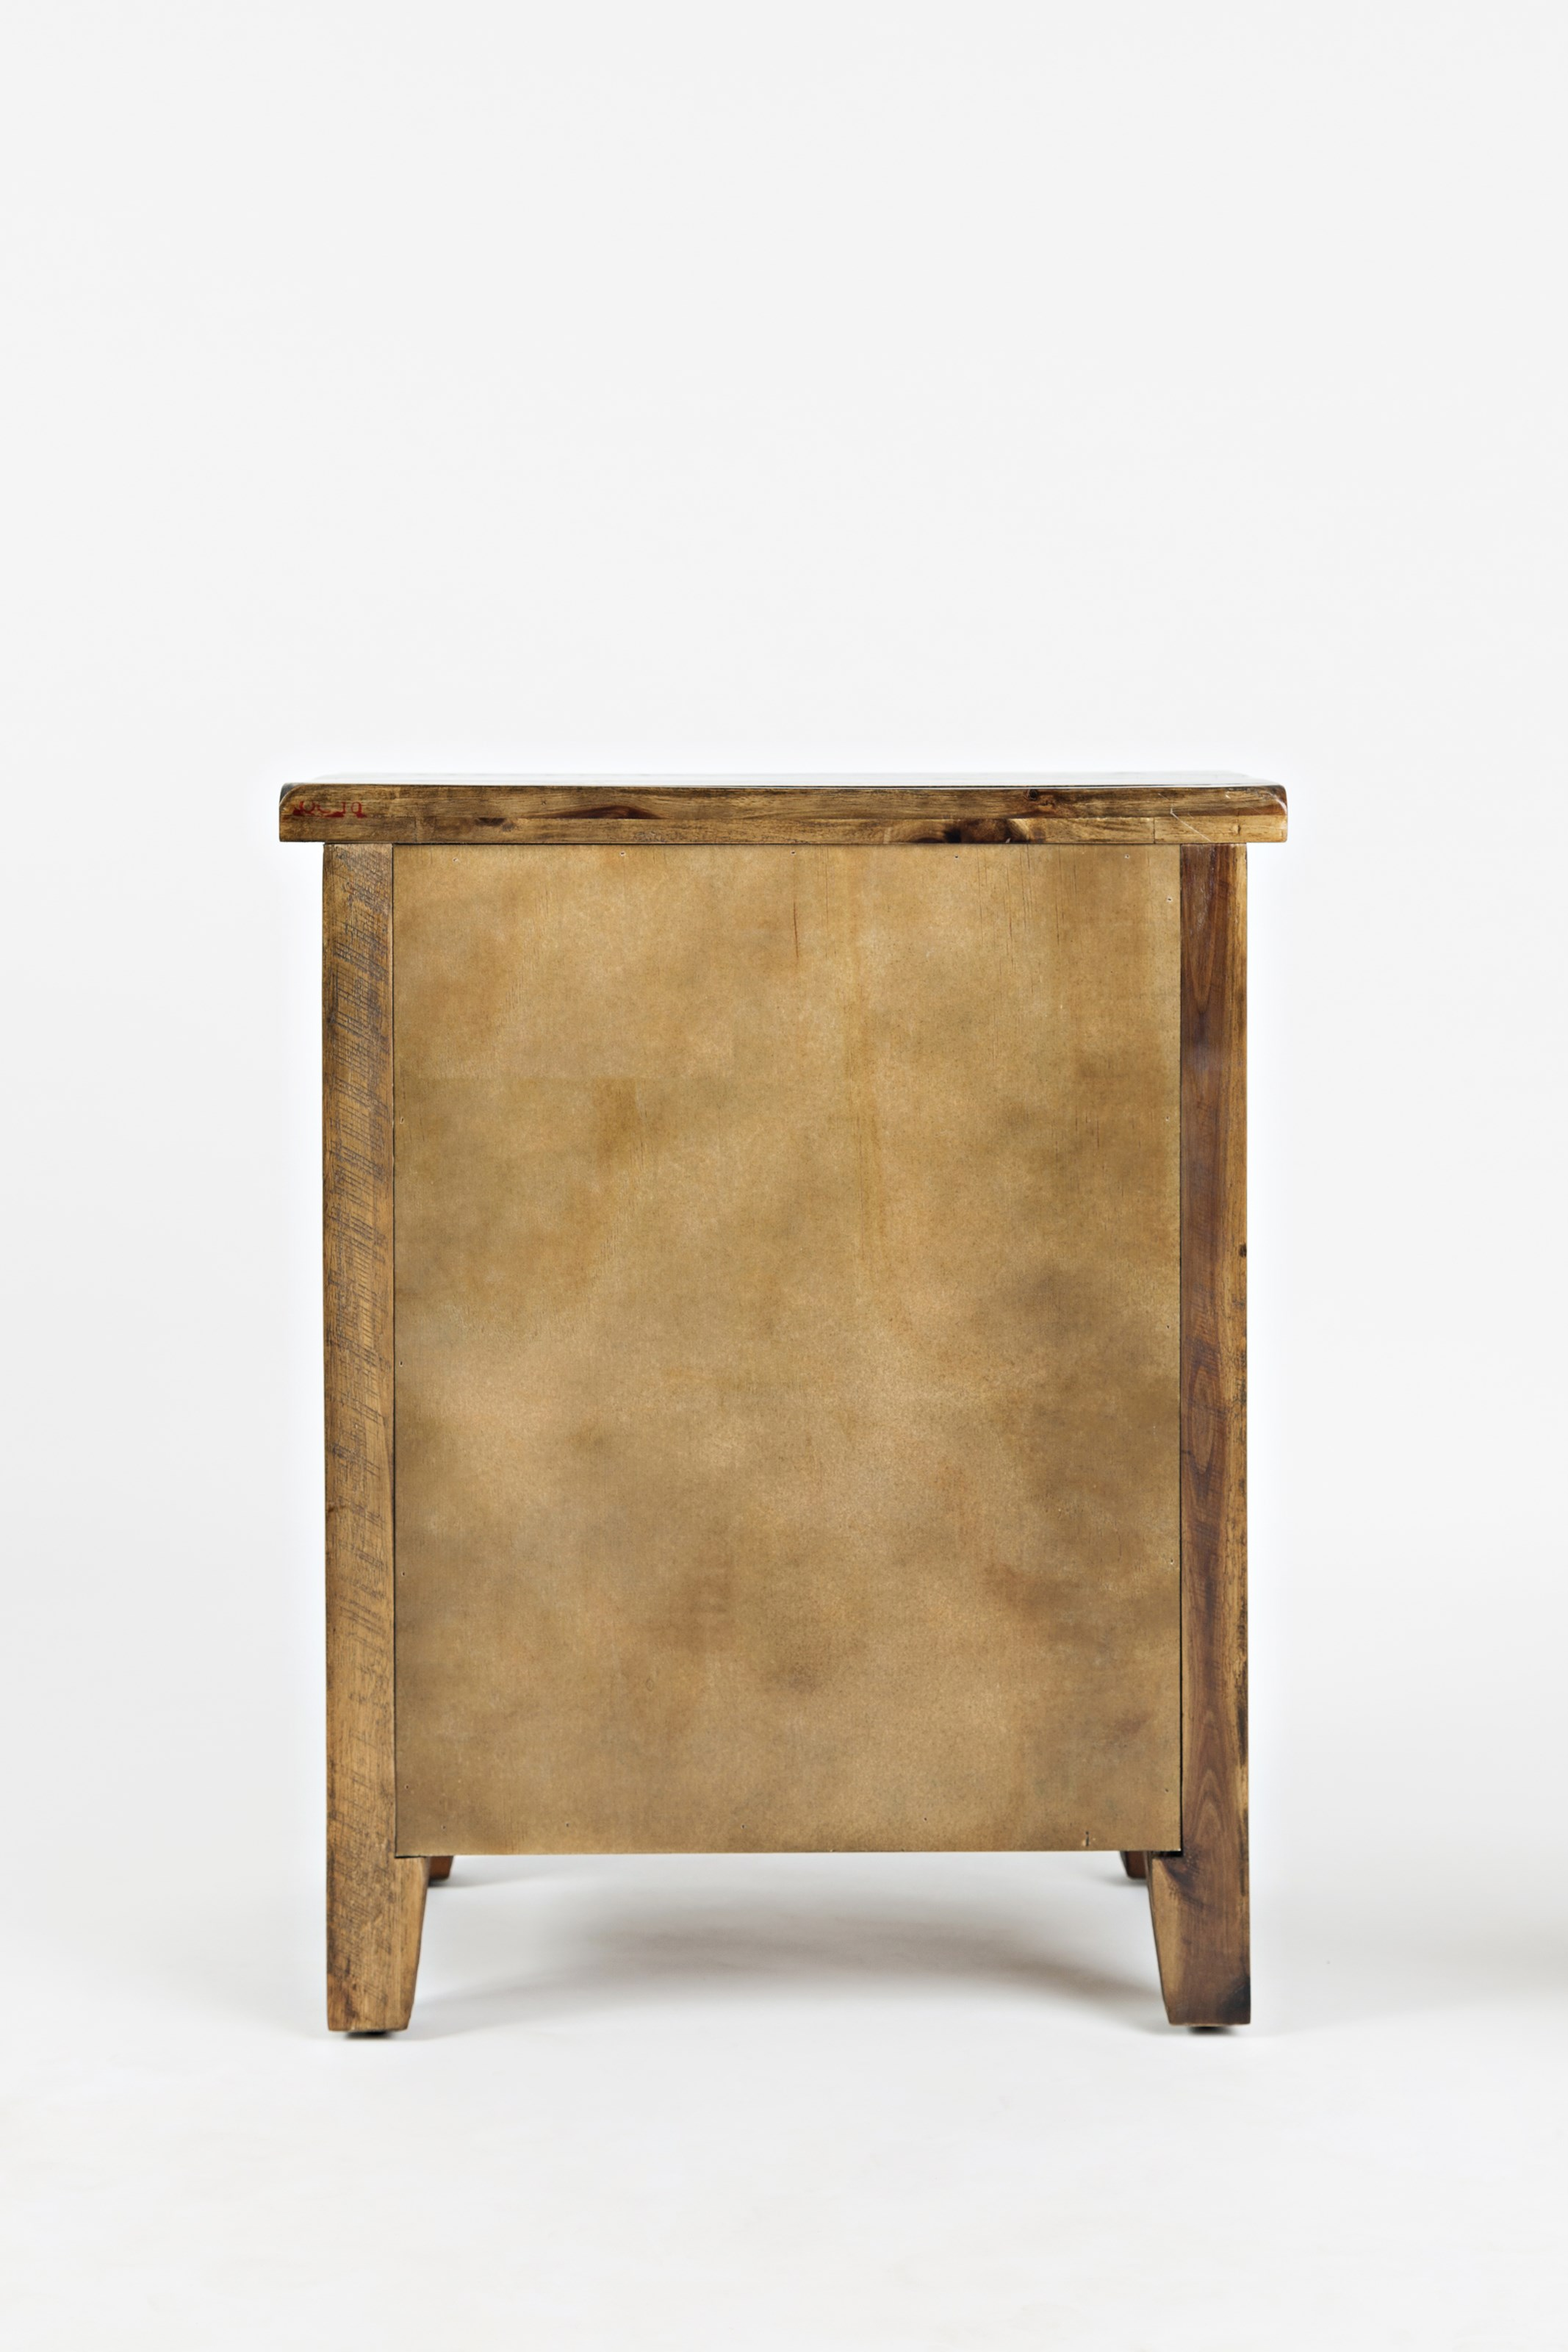 jofran artisan craft accent table dakota oak prod with charging station lamp set black hairpin legs small market umbrella mirrored console cabinet marble gold coffee ikea bedroom